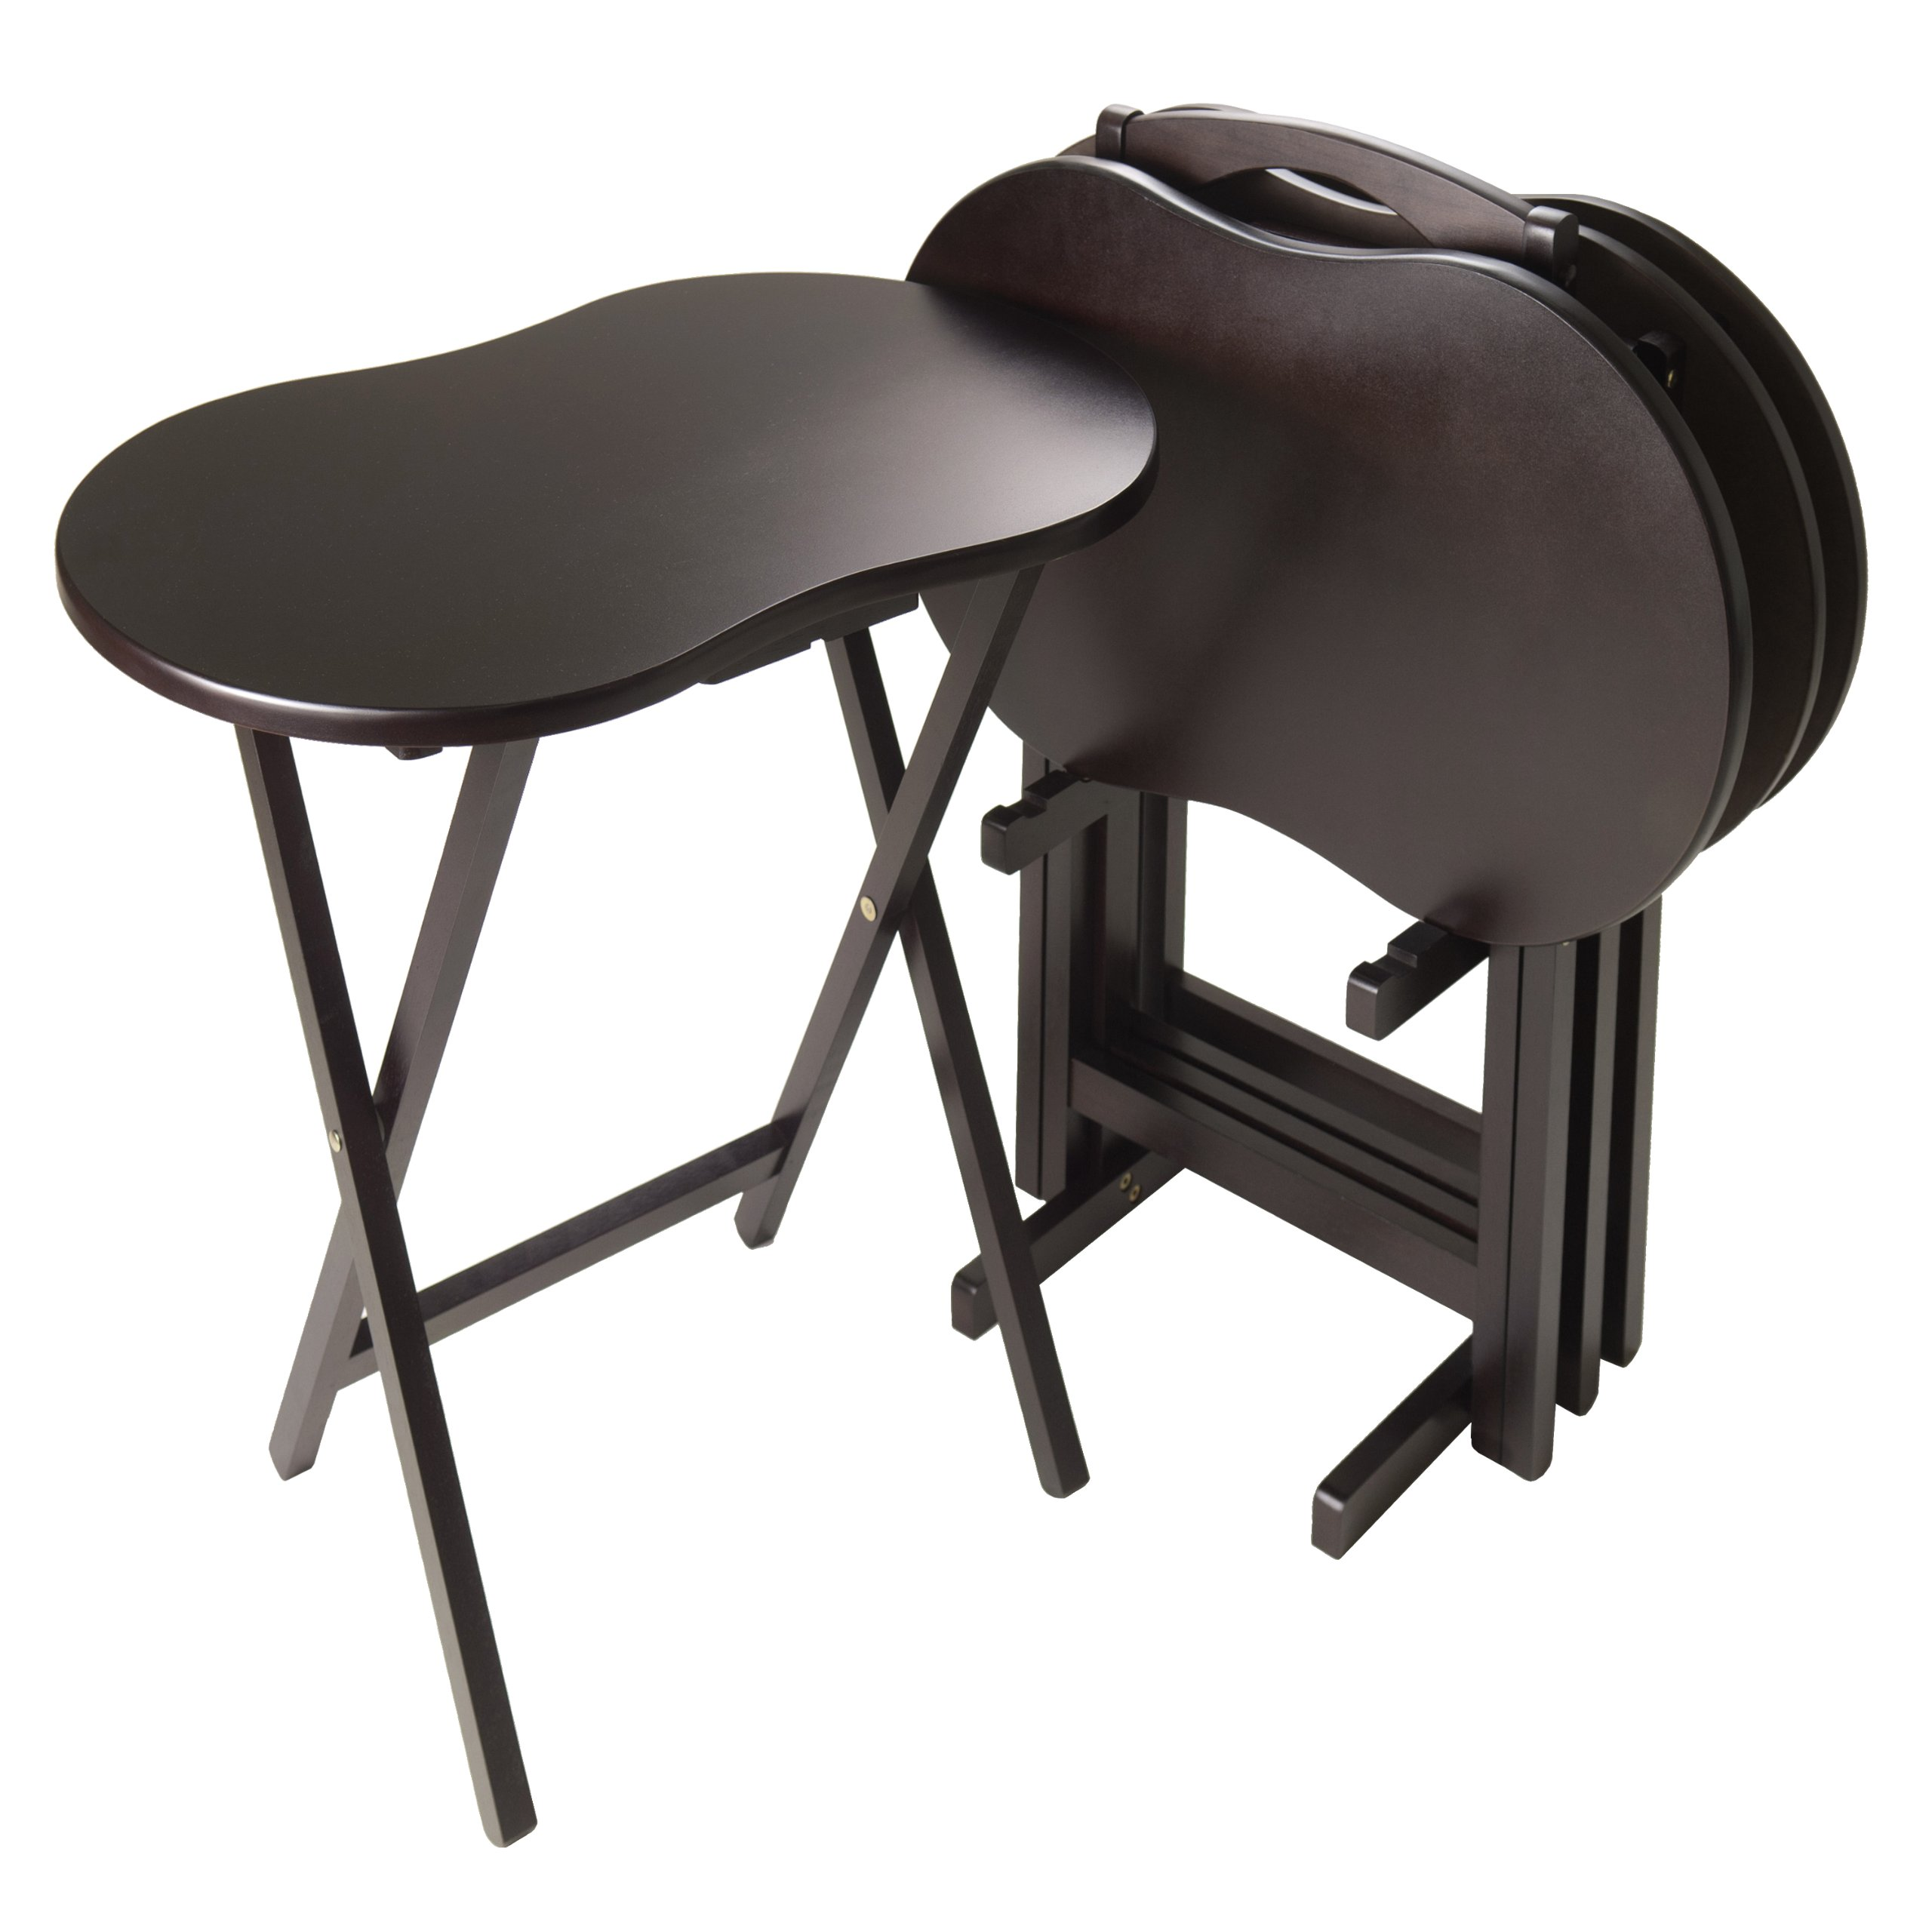 Winsome 92532 Skippy Snack Table, Dark Espresso by Winsome